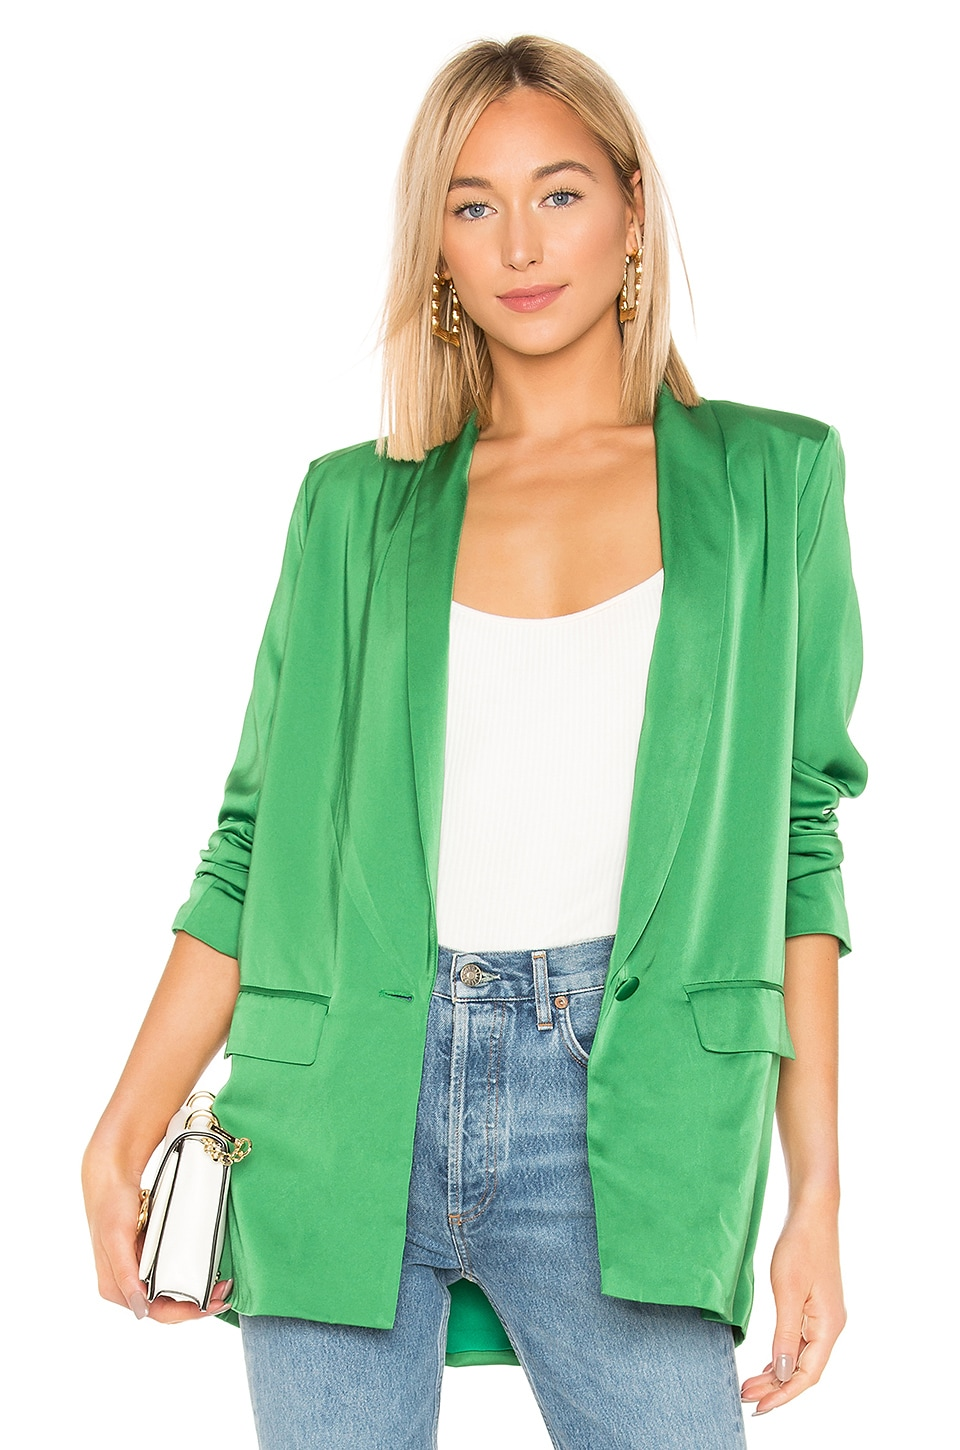 L'Academie The Fleur Blazer in Kelly Green